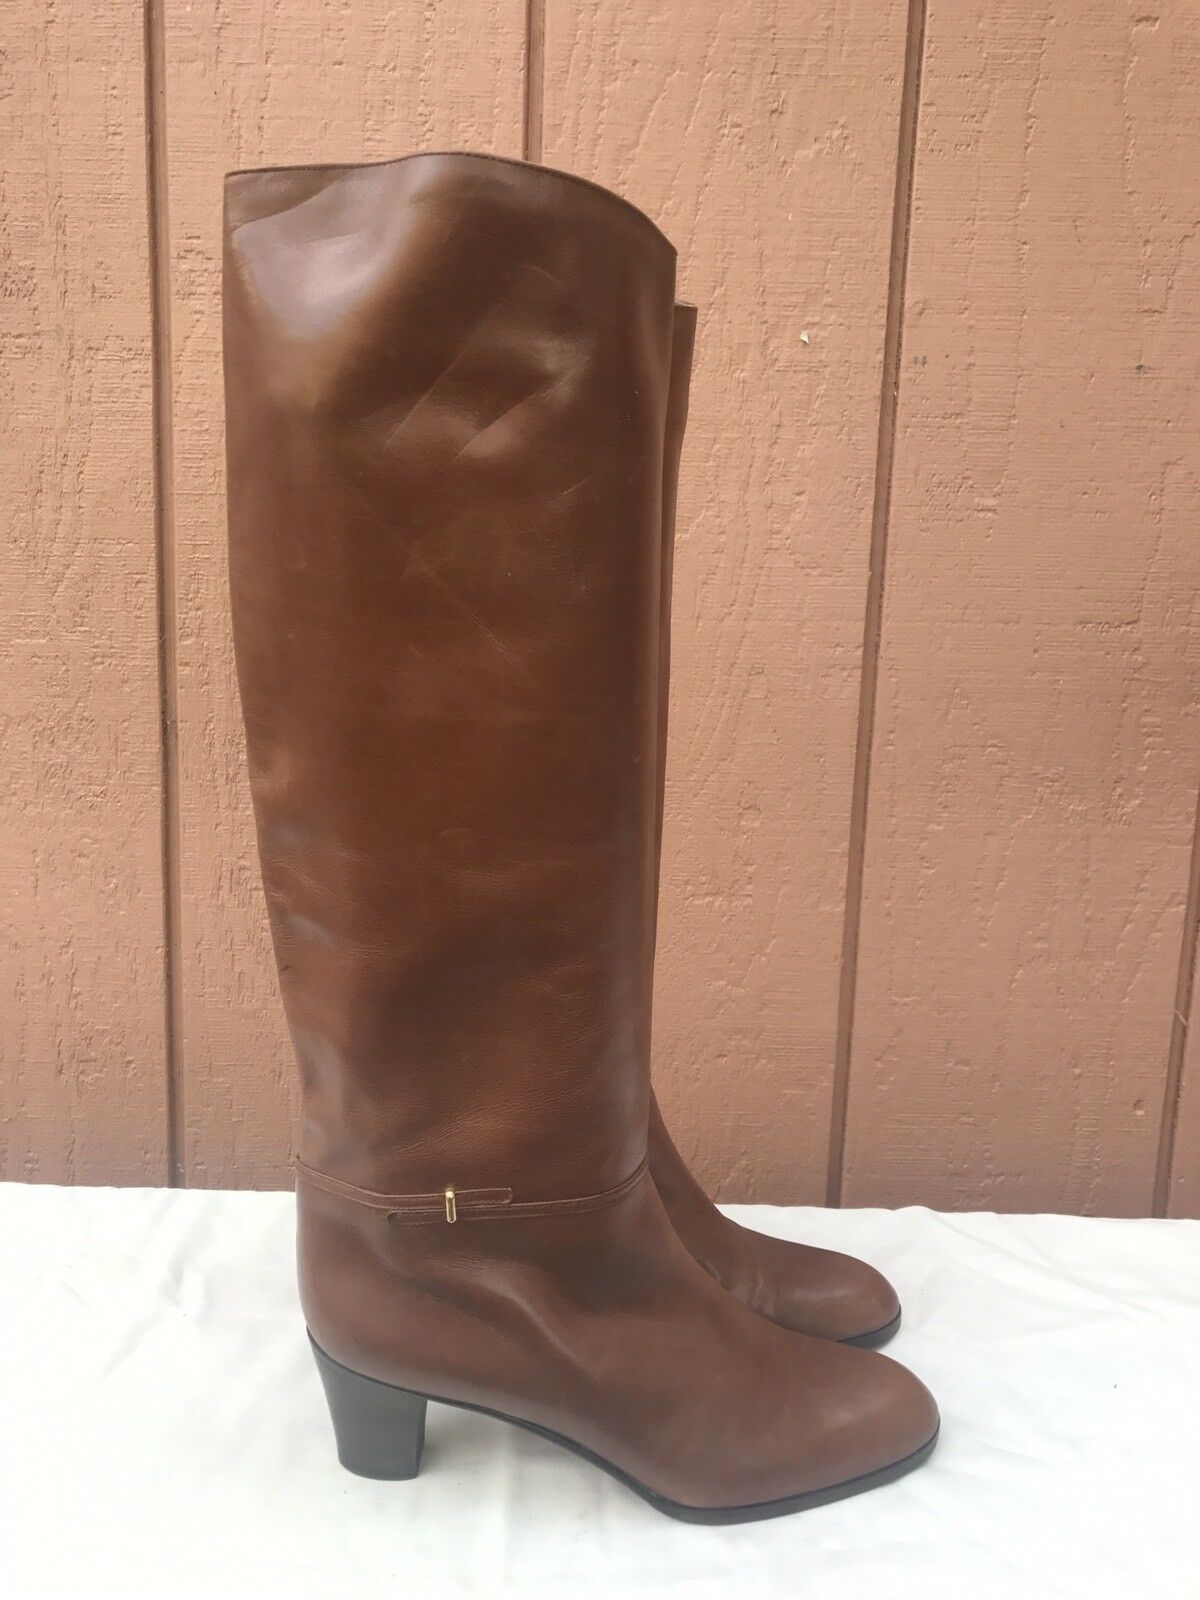 EUC RARE VINTAGE FRANK CARDONE NY US 6.5 BROWN LEATHER BOOTS WOMEN